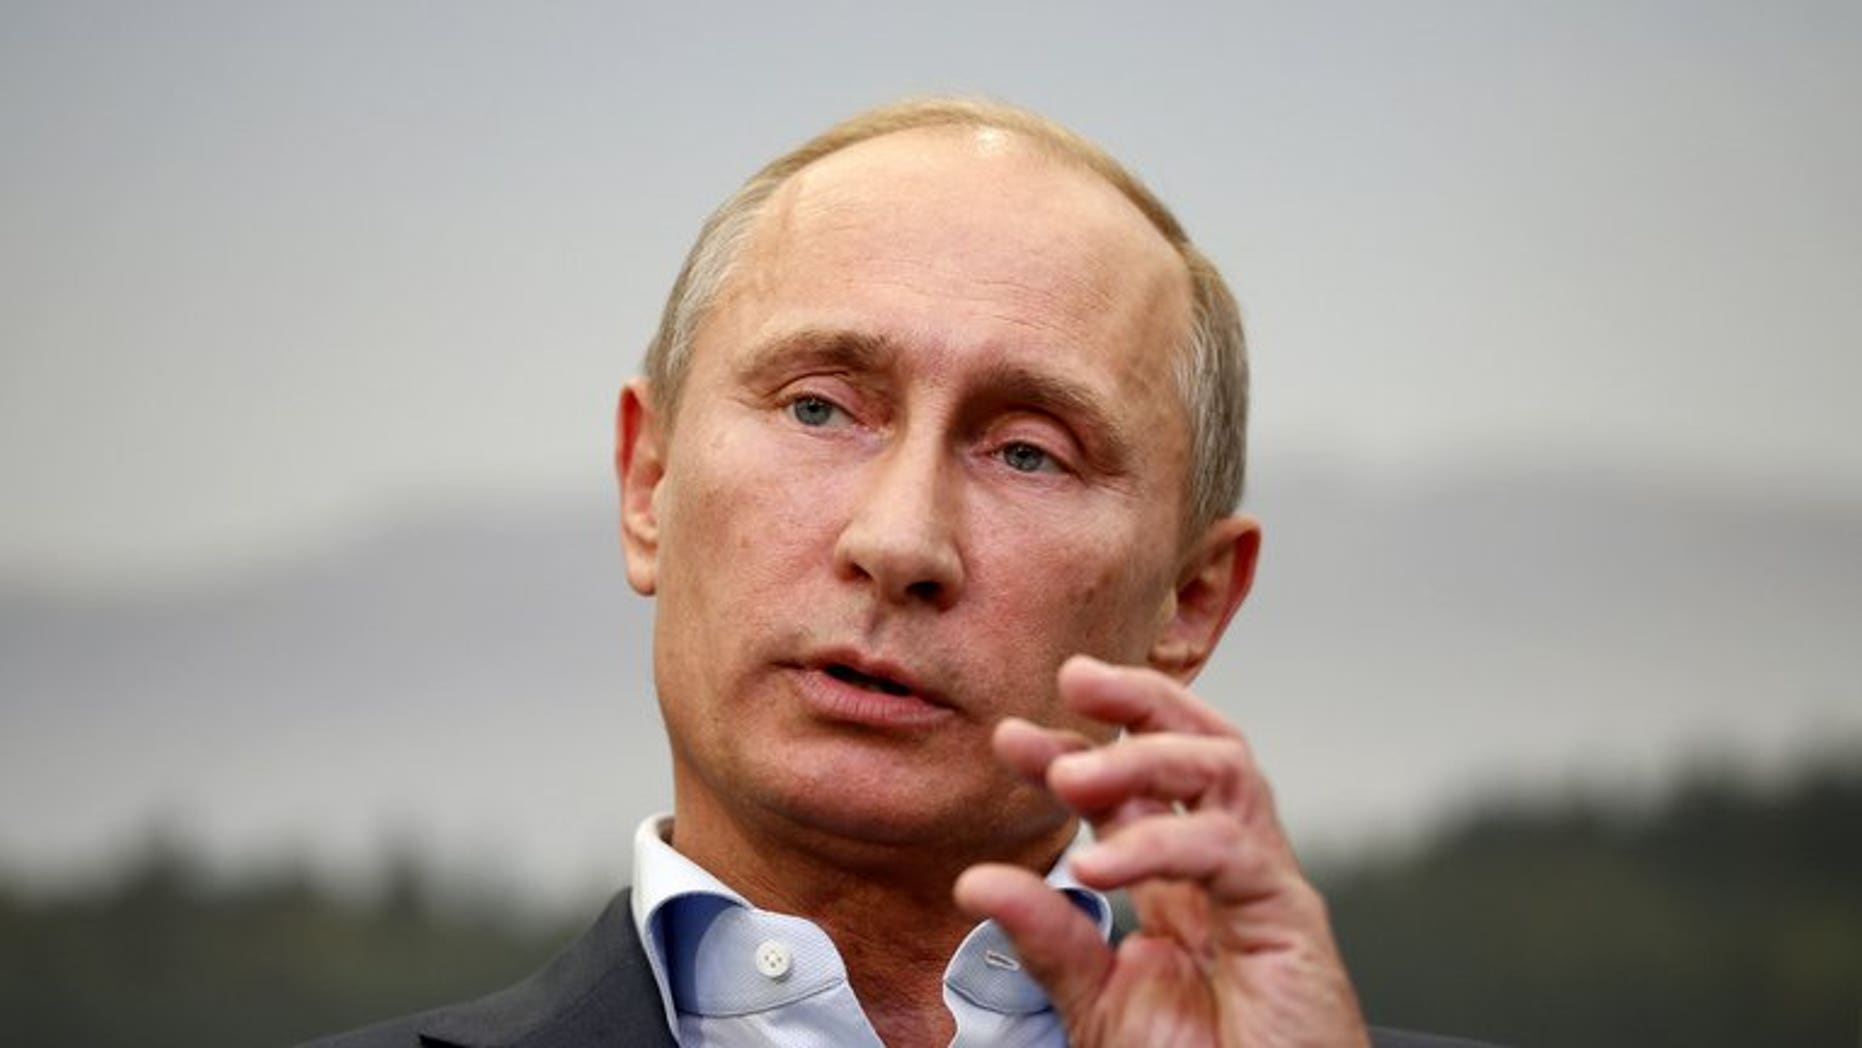 Russian President Vladimir Putin speaks during a press conference at the end of the G8 summit in Enniskillen, Northern Ireland, on June 18, 2013. Putin says he has no recollection of allegedly stealing the Super Bowl ring belonging to the National Football League's New England Patriots owner Robert Kraft.